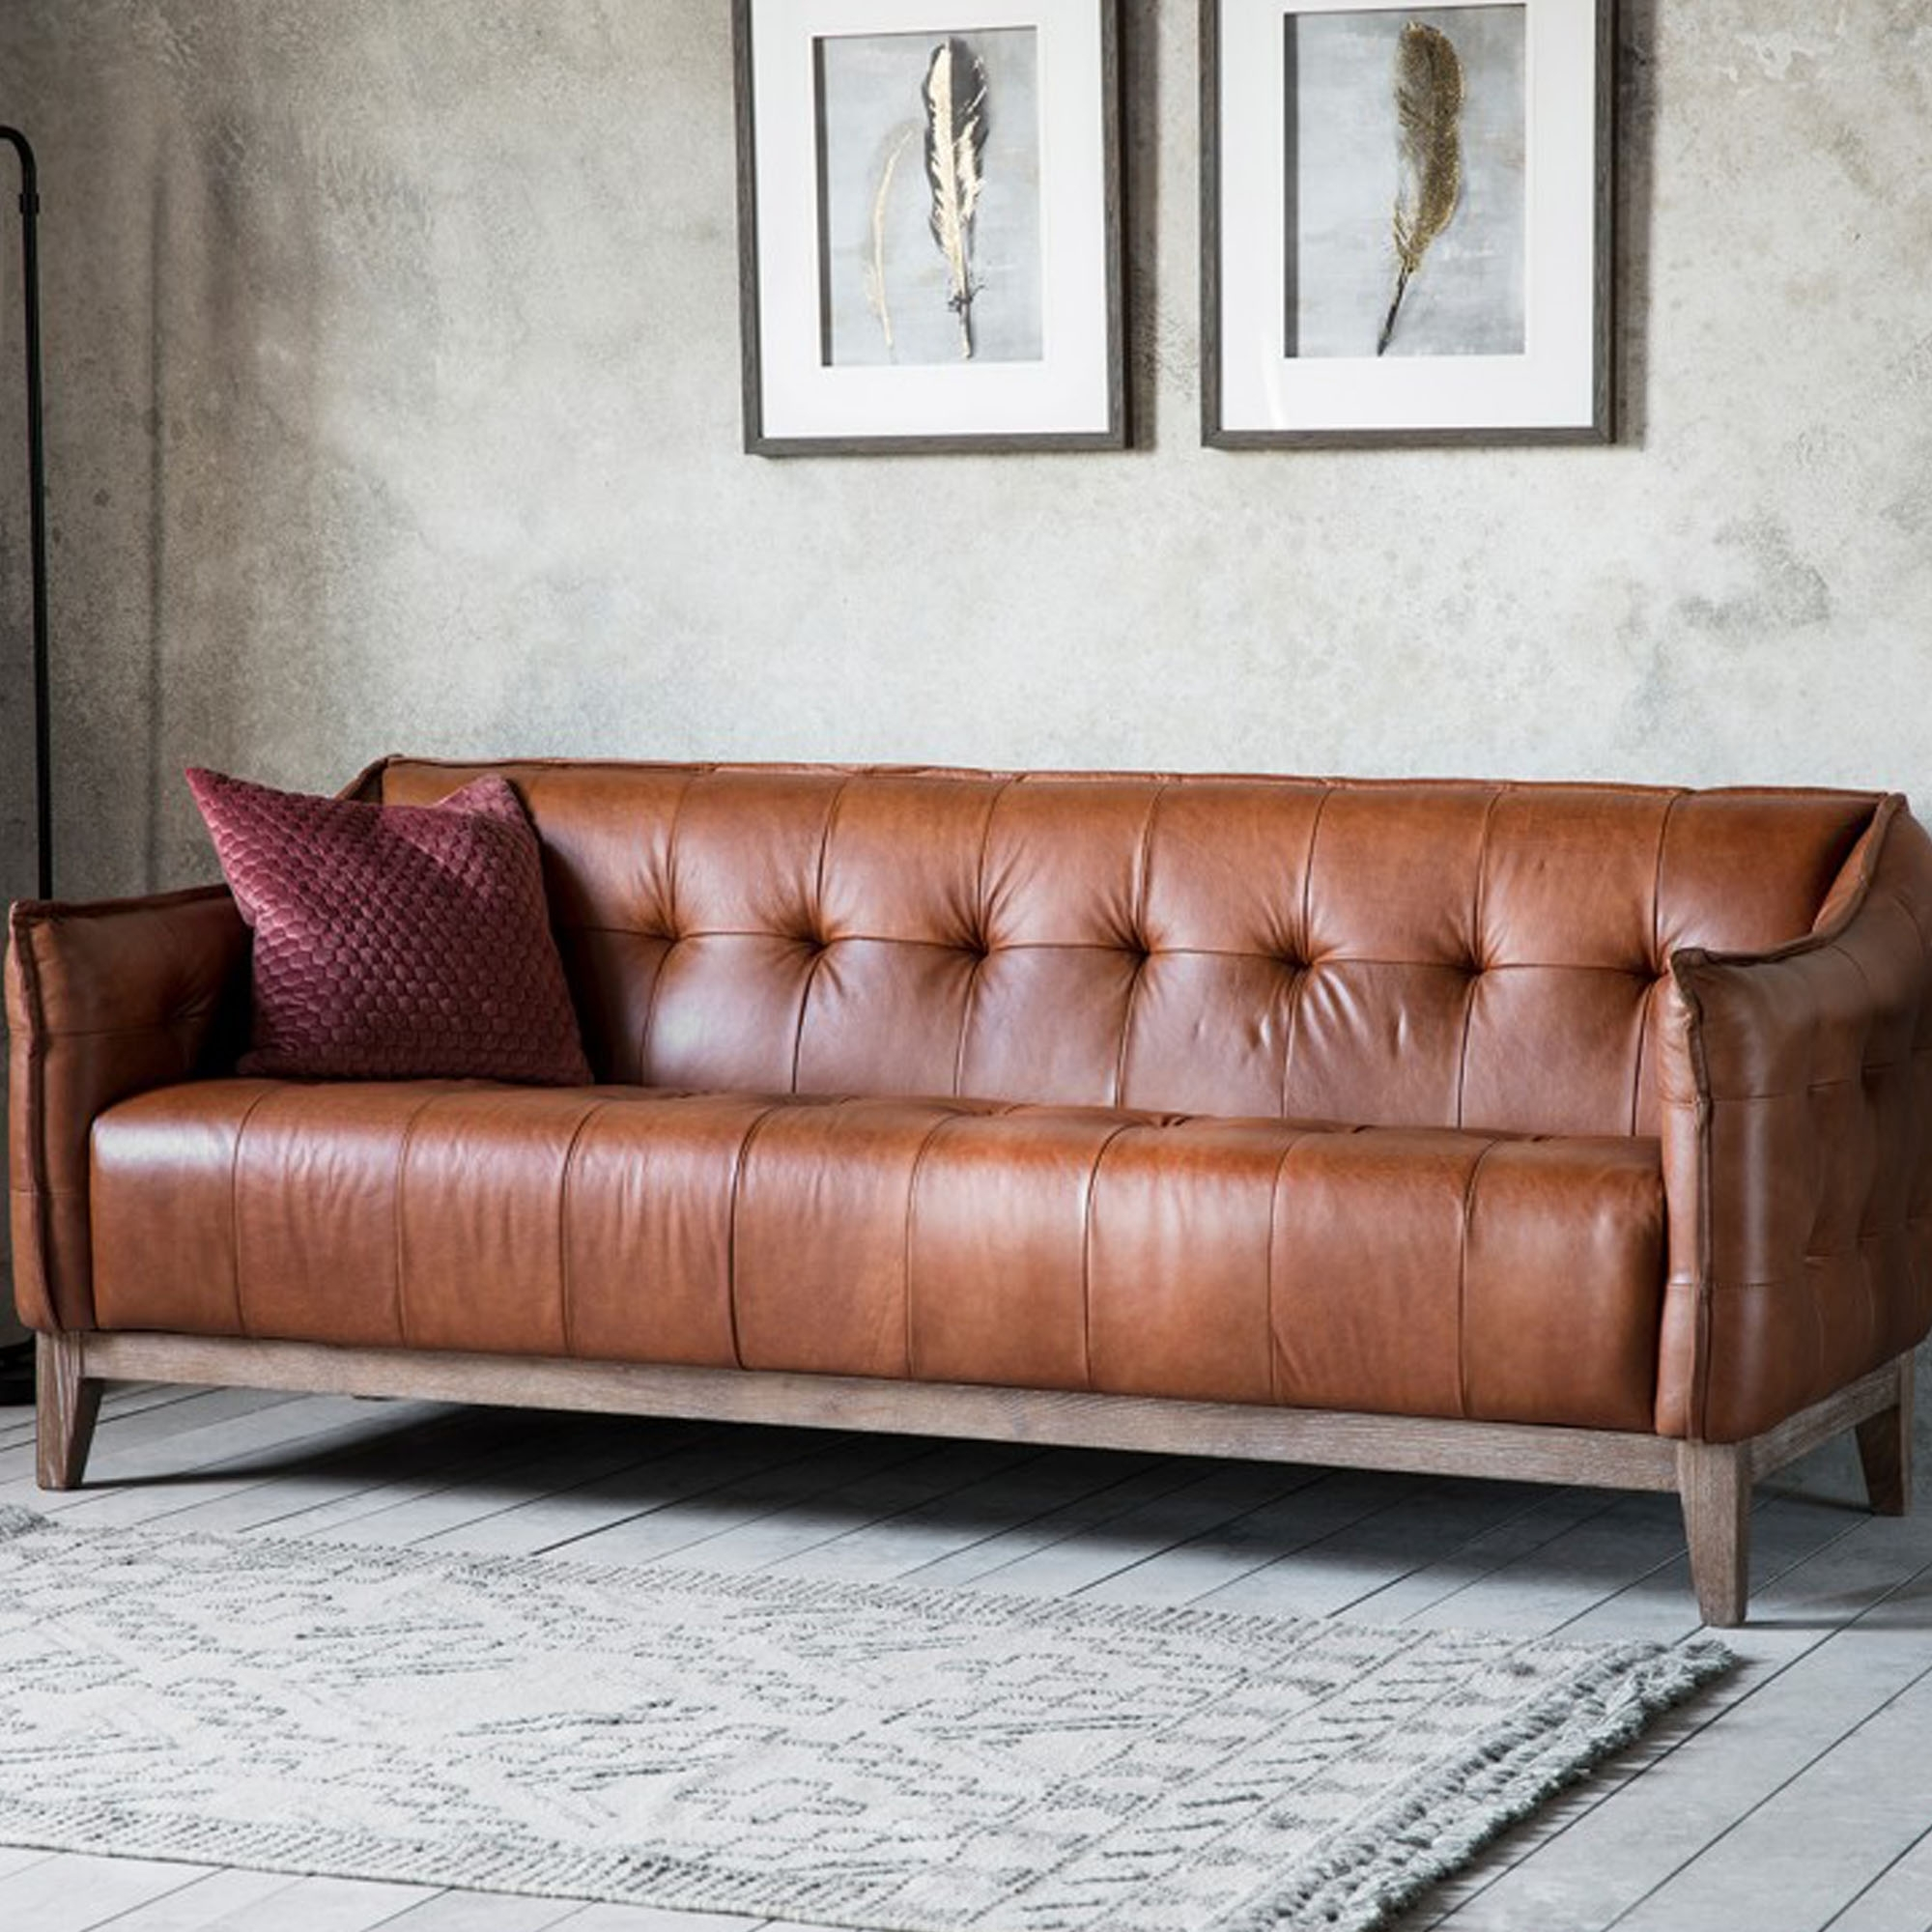 Ecclestone 3 Seater Sofa intended for size 2000 X 2000